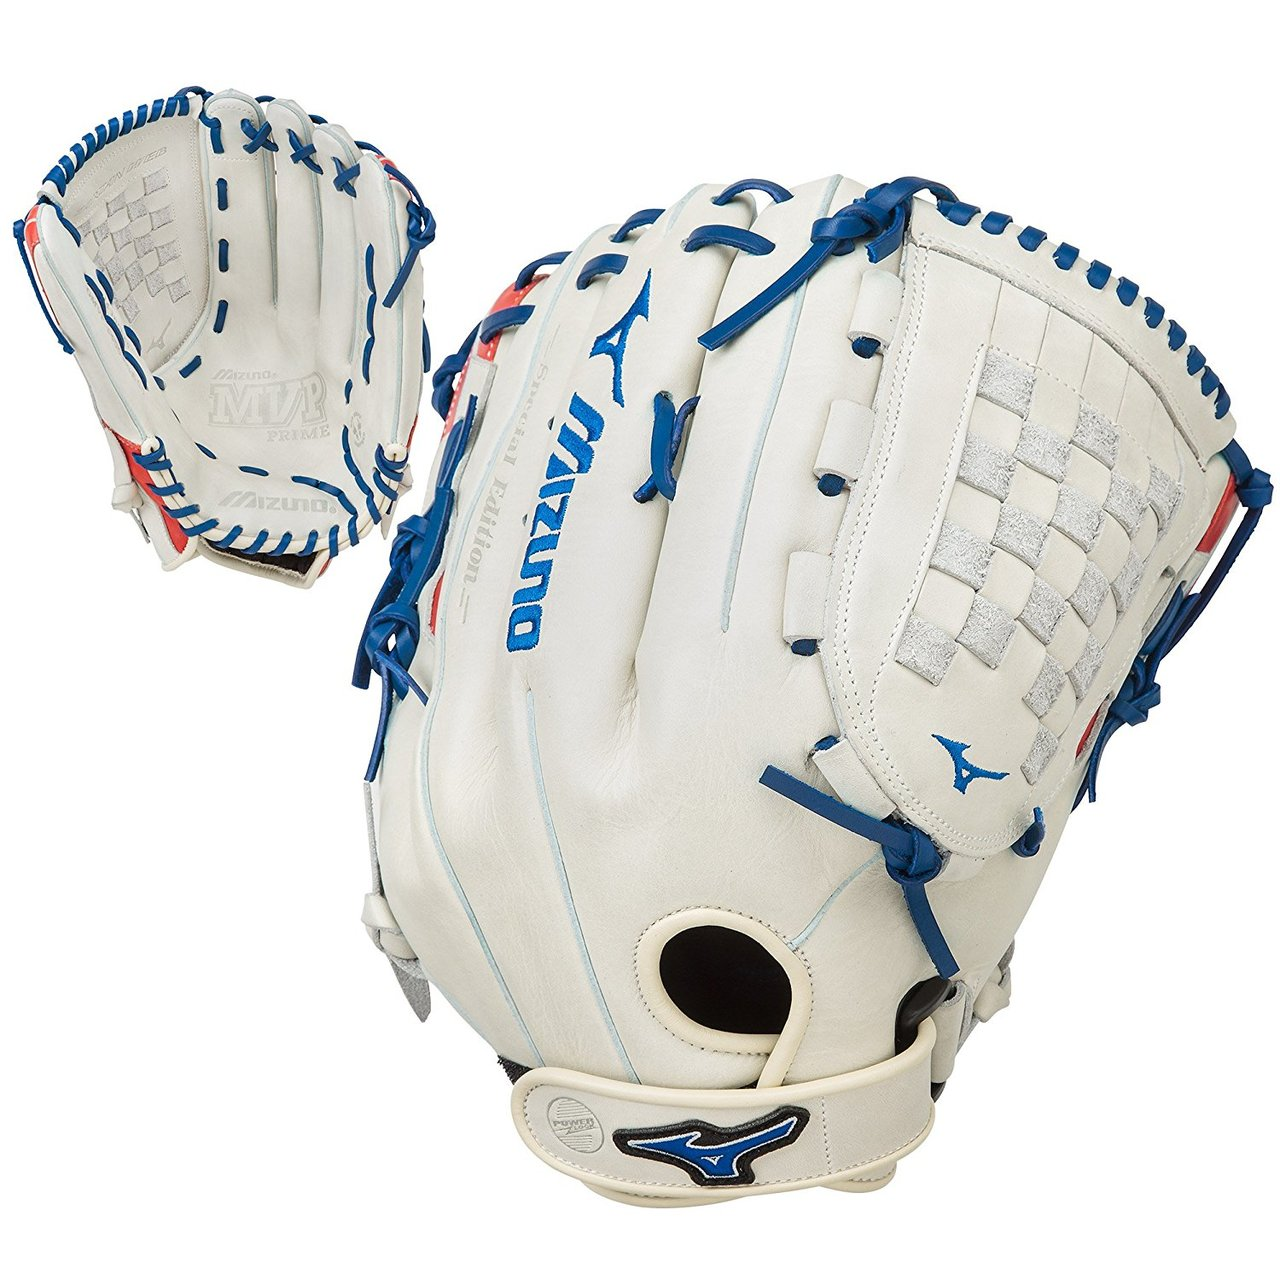 mizuno-mvp-prime-se-14-inch-gmvp1400pses5-slowpitch-glove-silver-red-navy-right-hand-throw GMVP1400PSES5-SIRDNY-RightHandThrow  889961060151 The Special Edition MVP Prime Slowpitch Series lives up to Mizunos